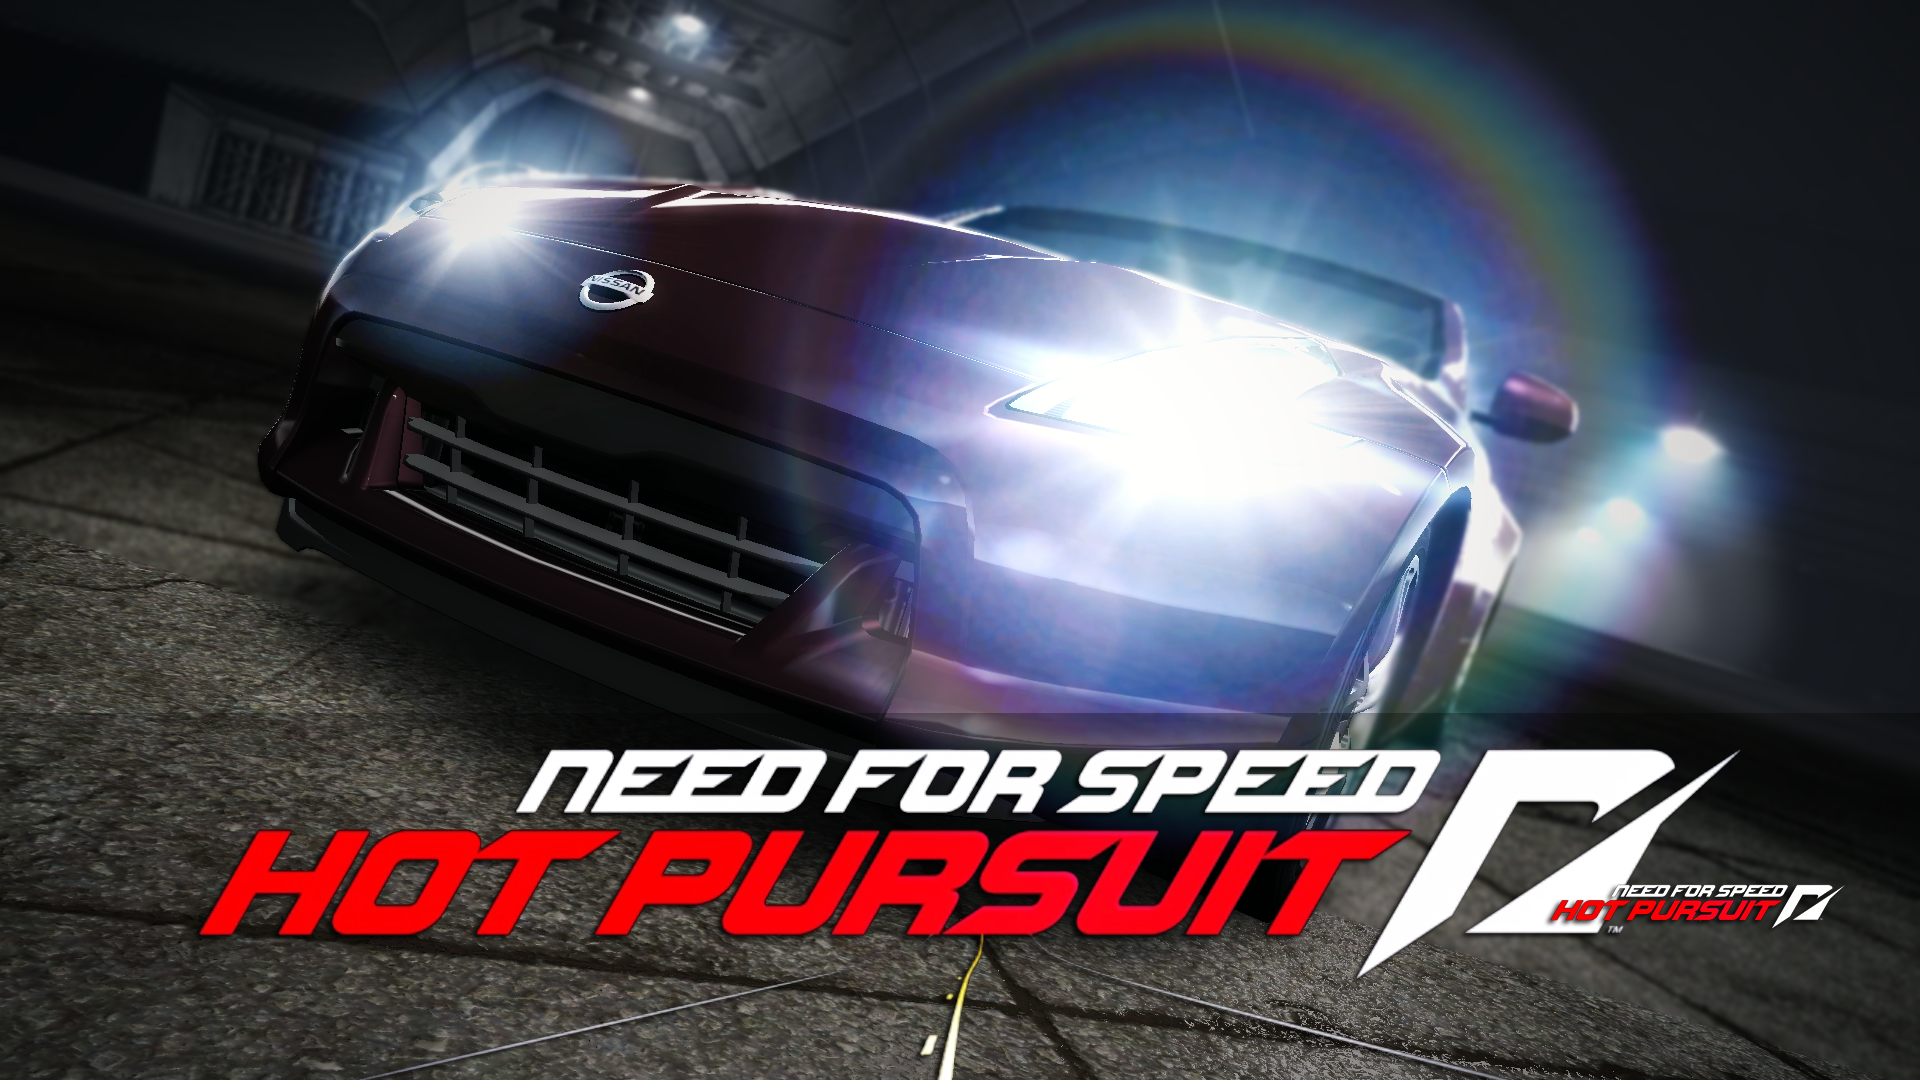 Free Download Need For Speed Hot Pursuit Cars Wallpaper 1920x1080